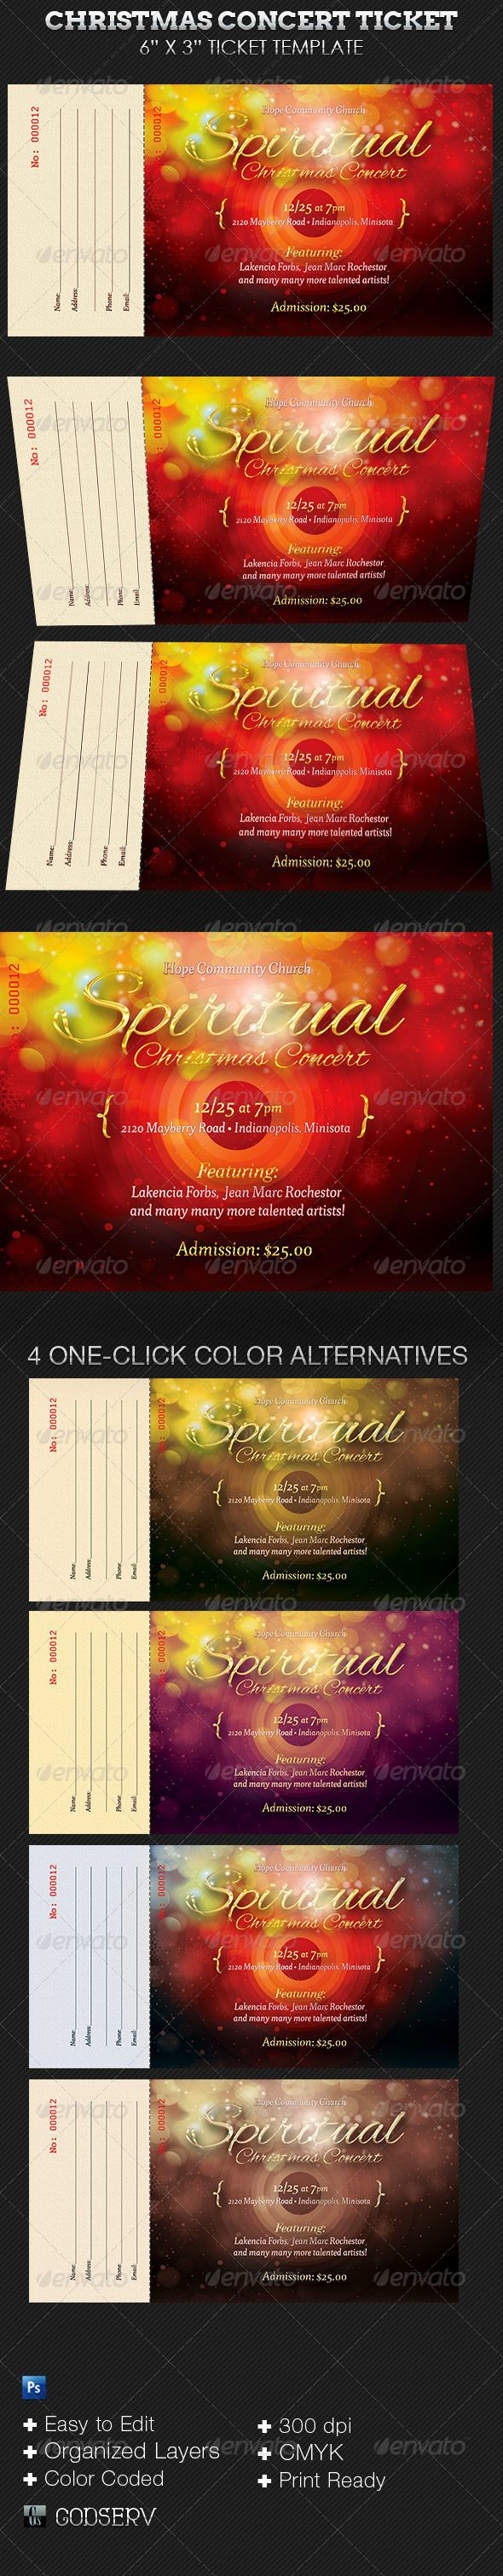 Concert Ticket Template Free Download Unique 14 Best Layoutstext And Images Images On Pinterest  Brochures .